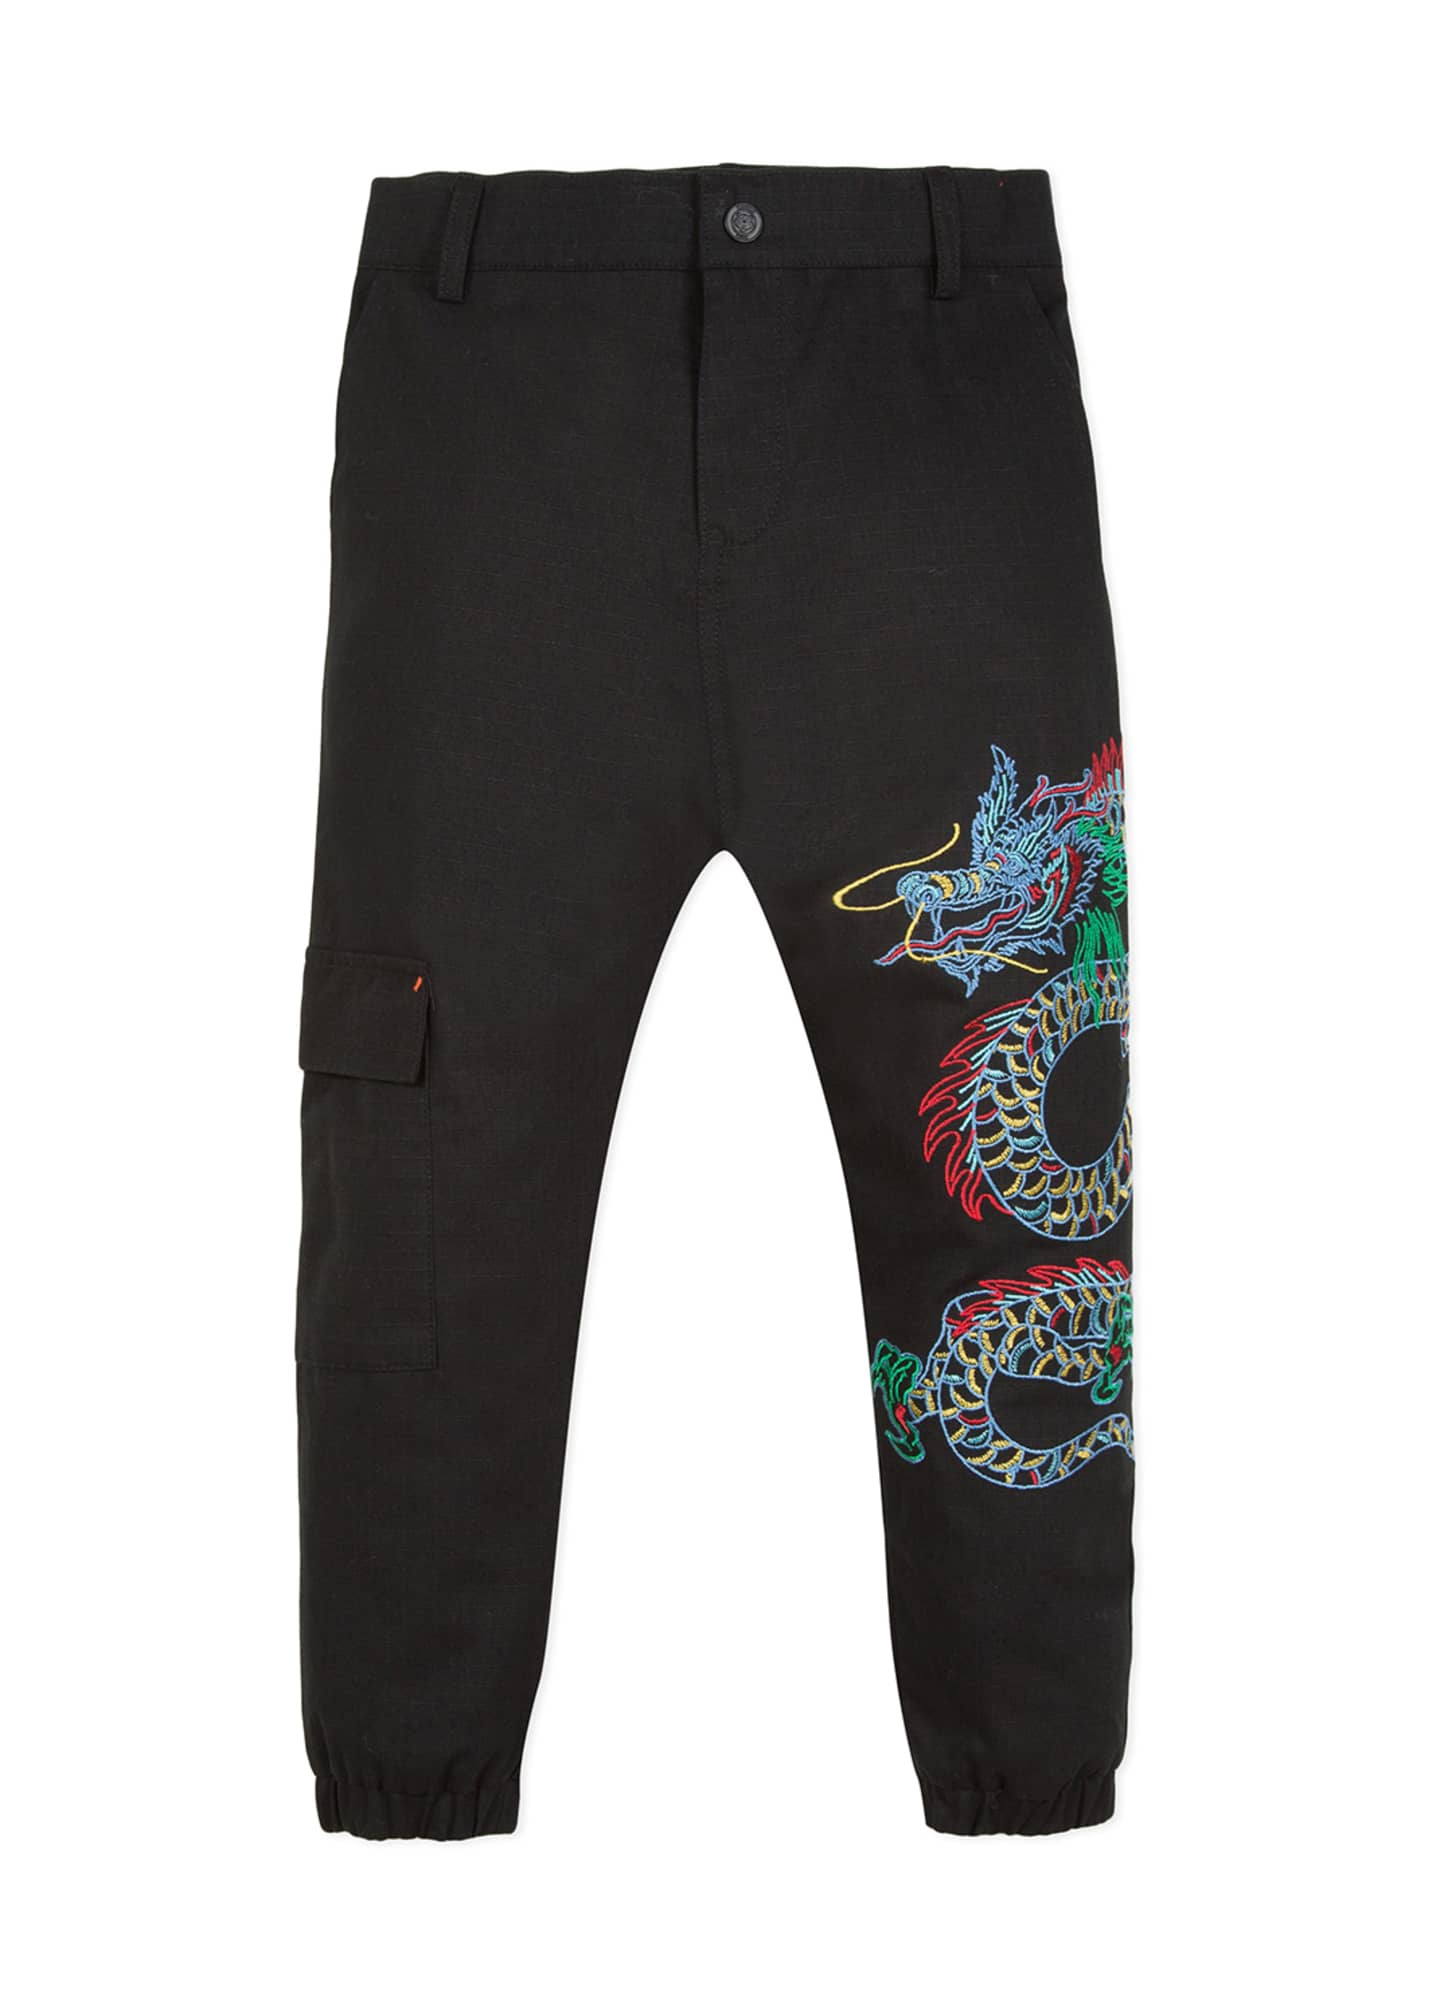 Kenzo Japanese Dragon Embroidered Cargo Pants, Size 8-12